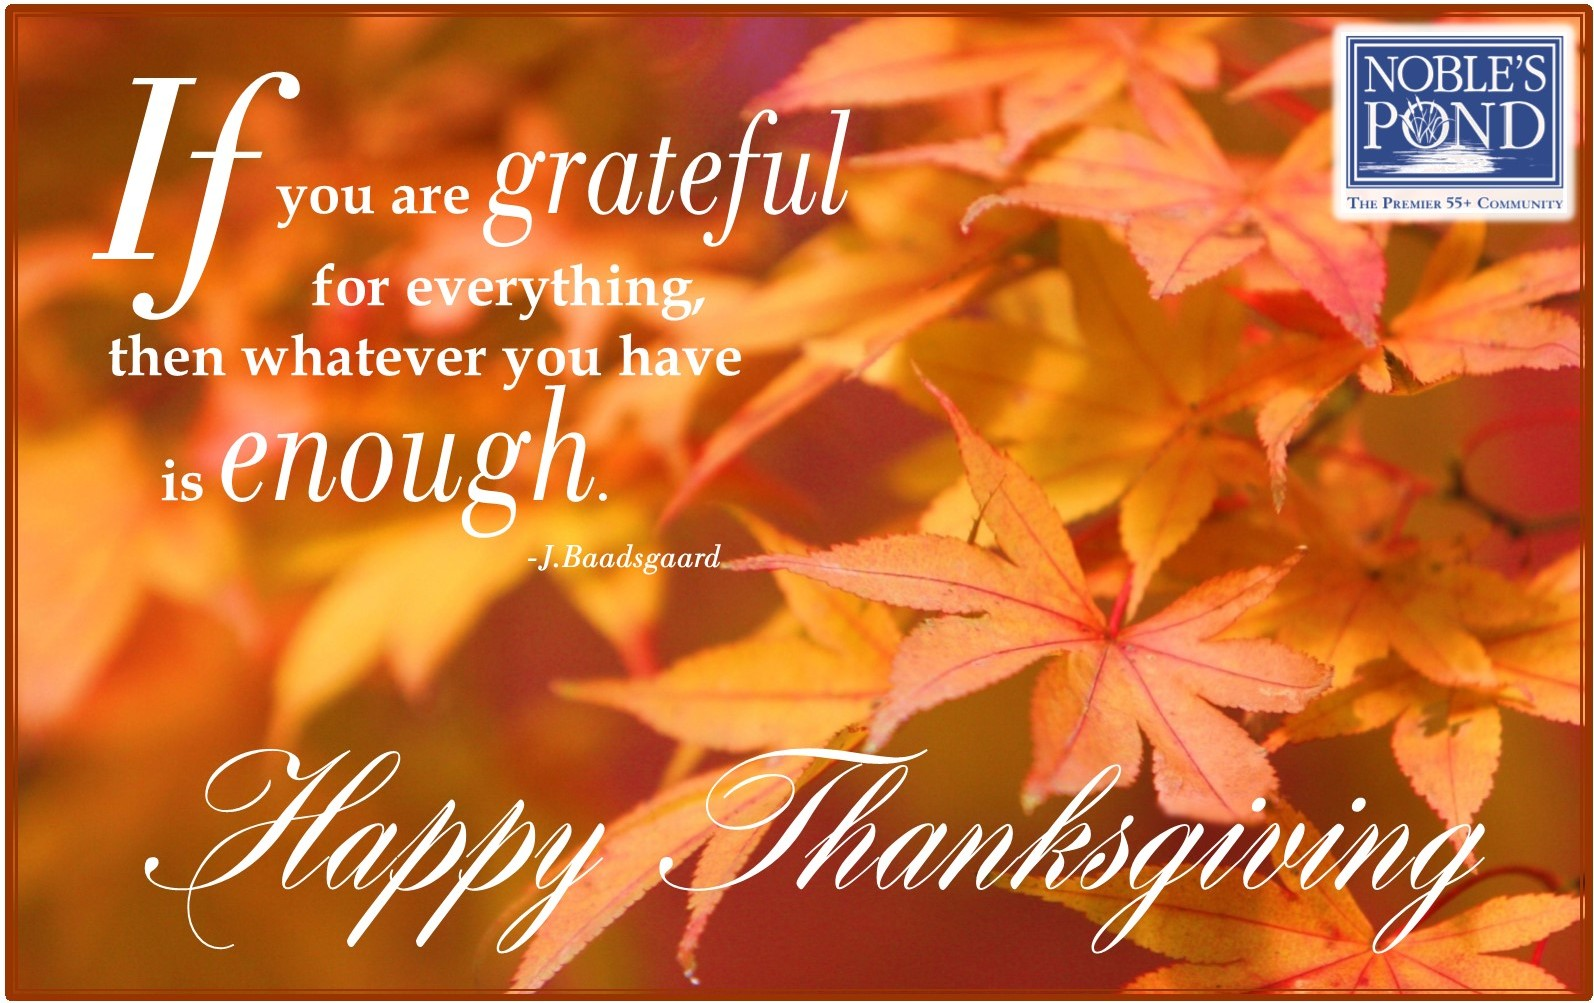 Thanksgiving wishes from Noble's Pond